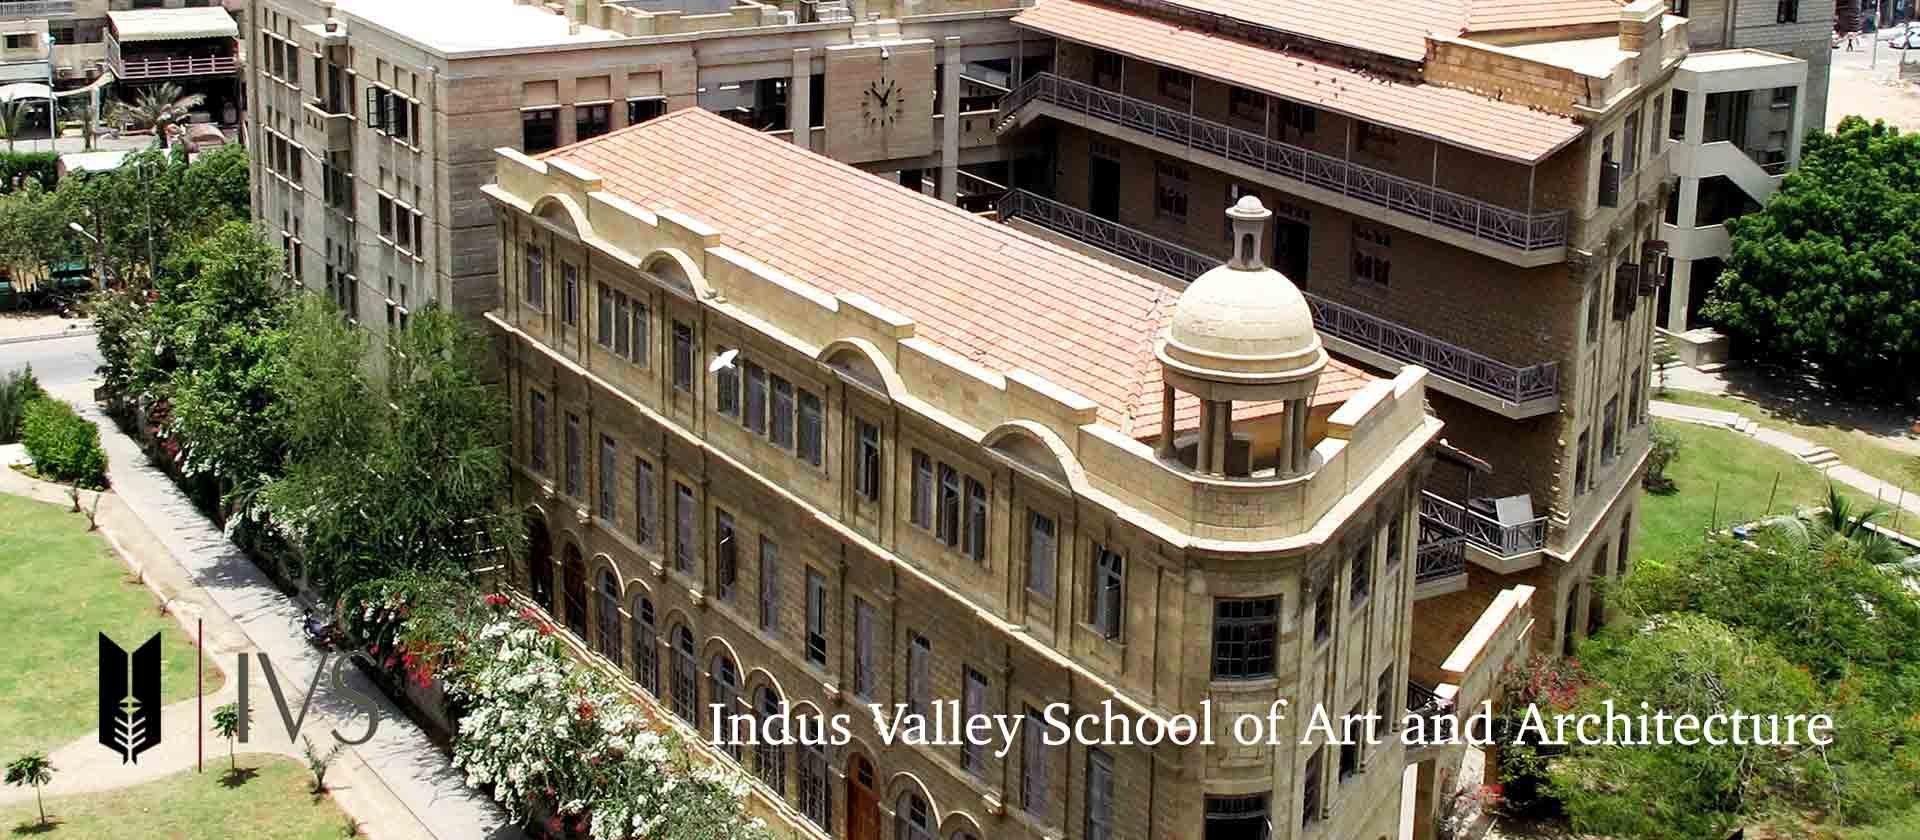 An interview by Ms Sana Shahid, Indus Valley School of Art and Architecture for TV series Moorat